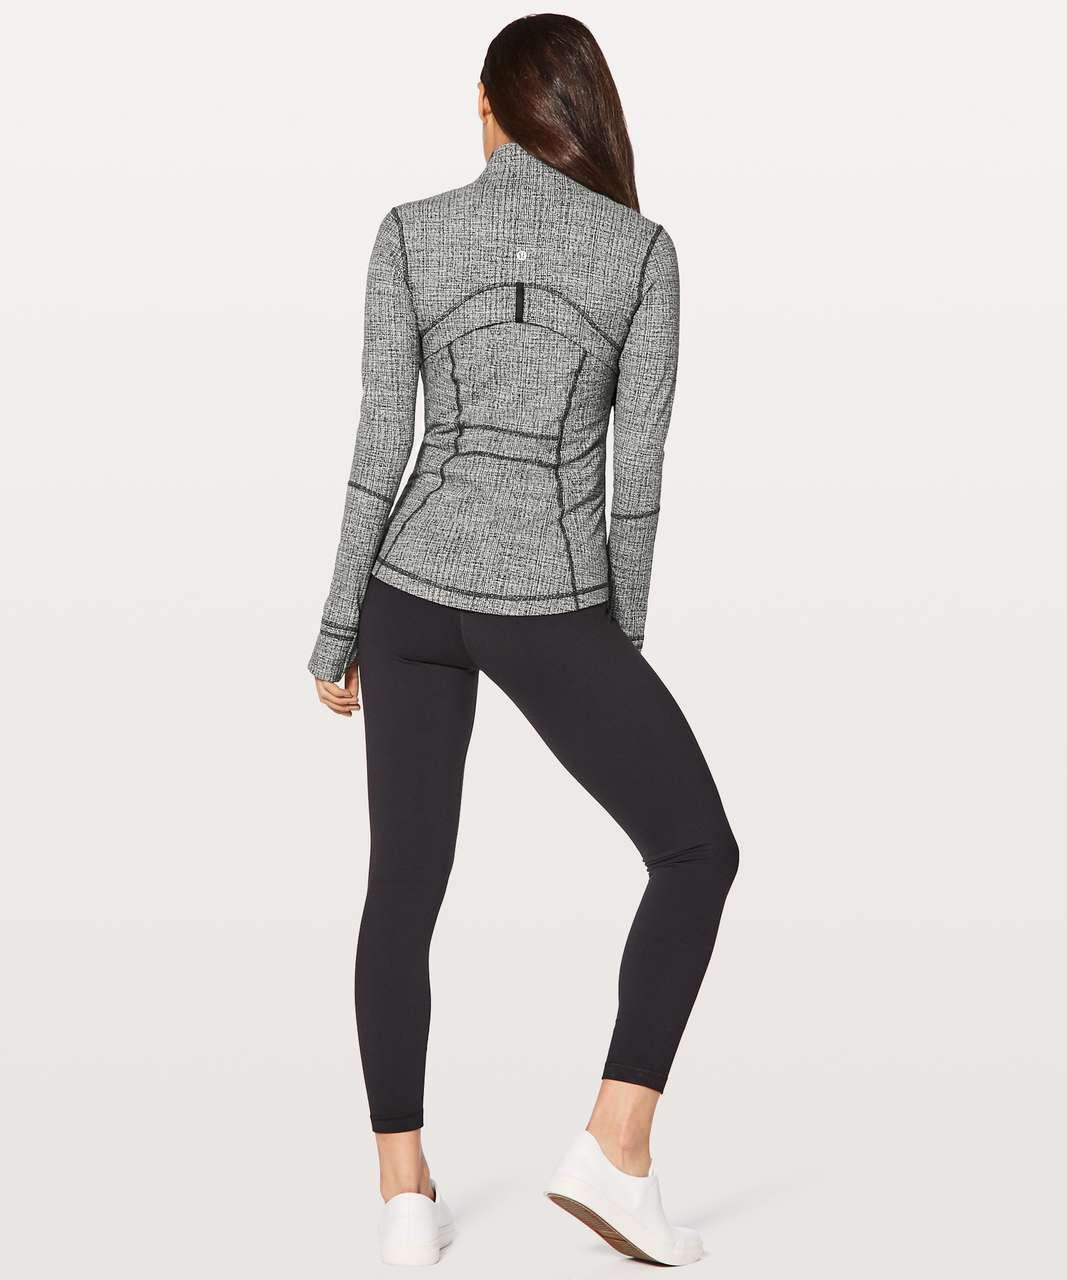 Lululemon Define Jacket - Ritual Jacquard Luon Black White